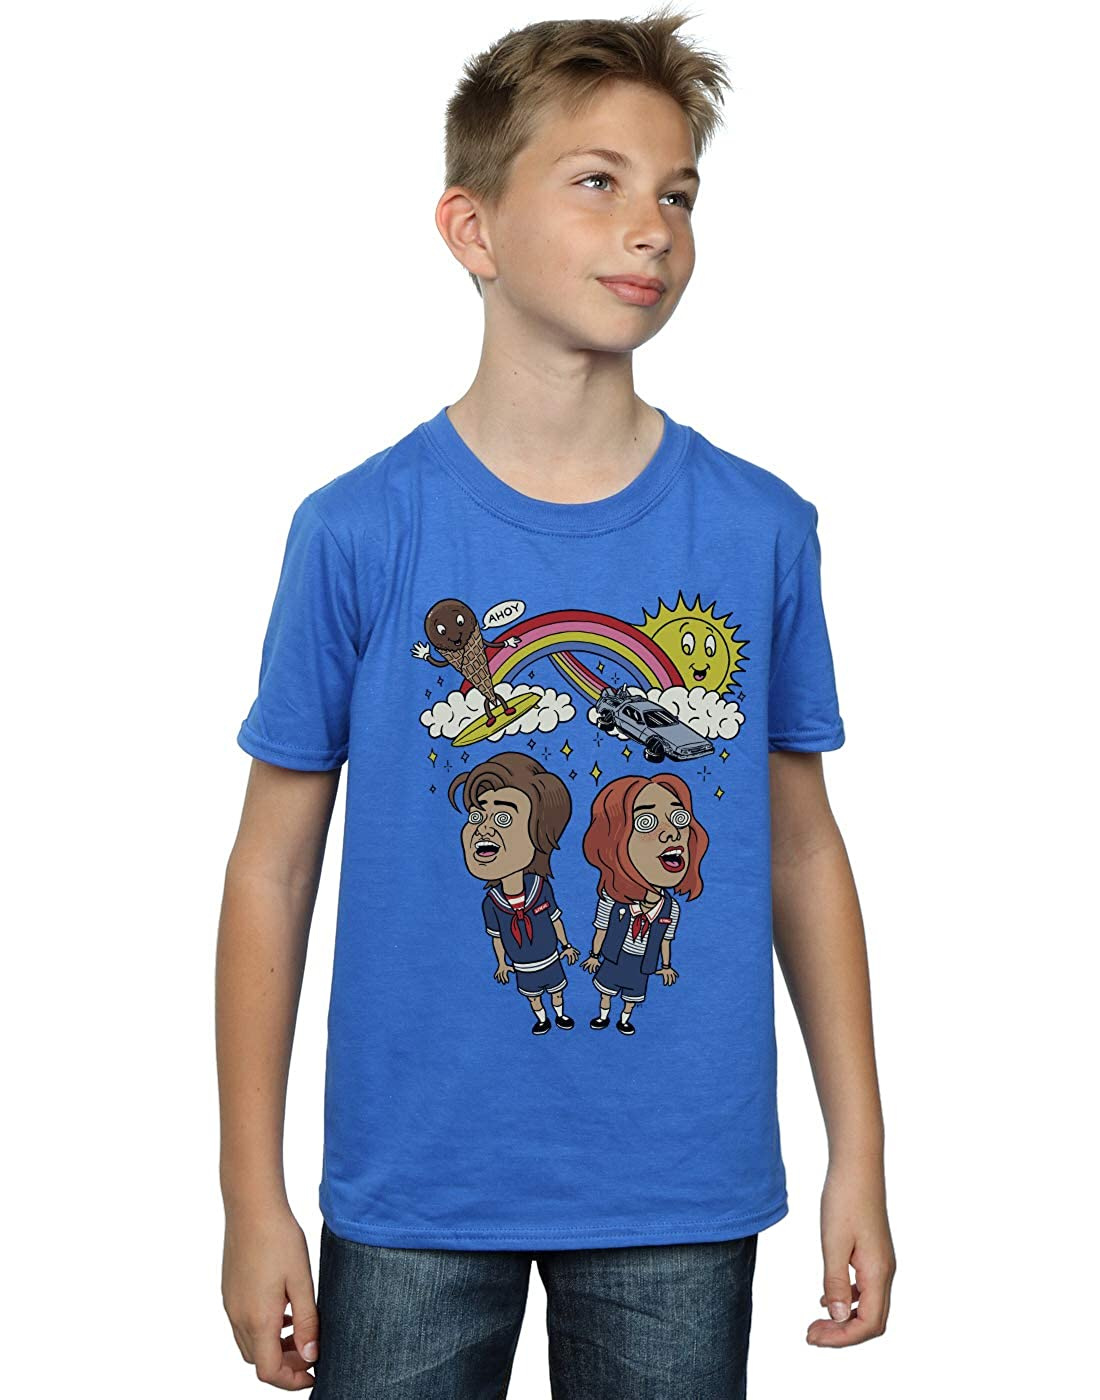 Absolute Cult Pennytees Boys Trippin Troops T-Shirt